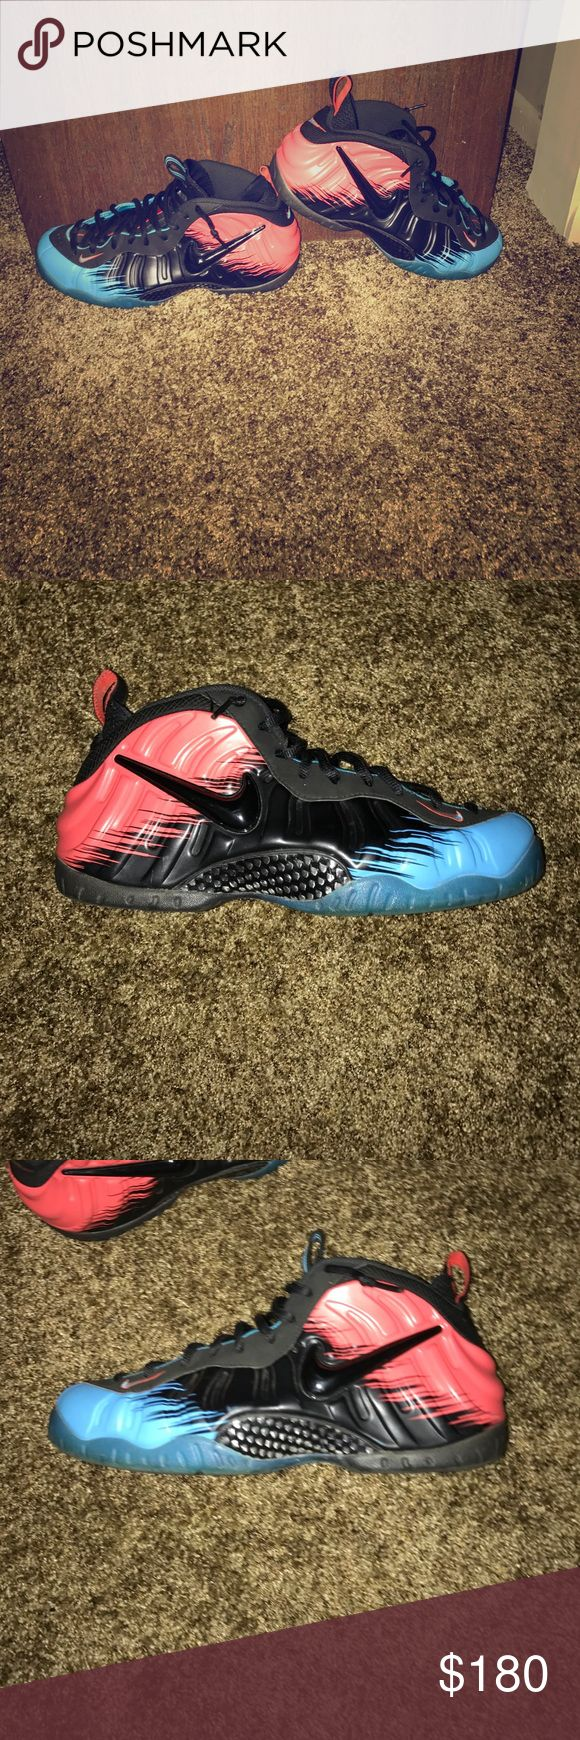 "AIR FOAMPOSITE PRO ""SPIDER-MAN"" In very good condition Nike Shoes Sneakers"